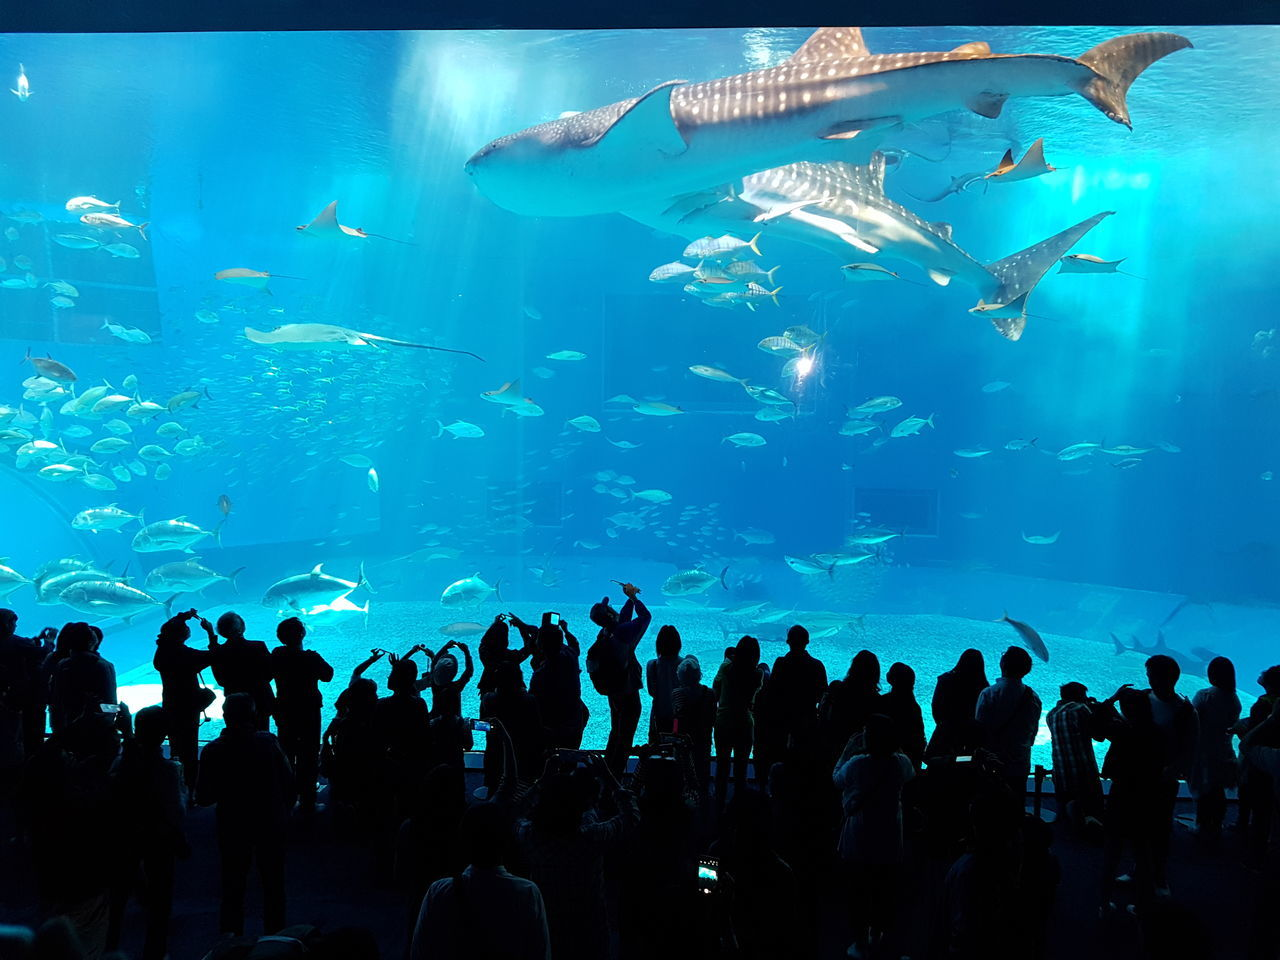 fish, aquarium, large group of animals, sea life, real people, animals in captivity, large group of people, water, swimming, indoors, silhouette, leisure activity, animals in the wild, lifestyles, men, blue, watching, whale shark, women, nature, crowd, day